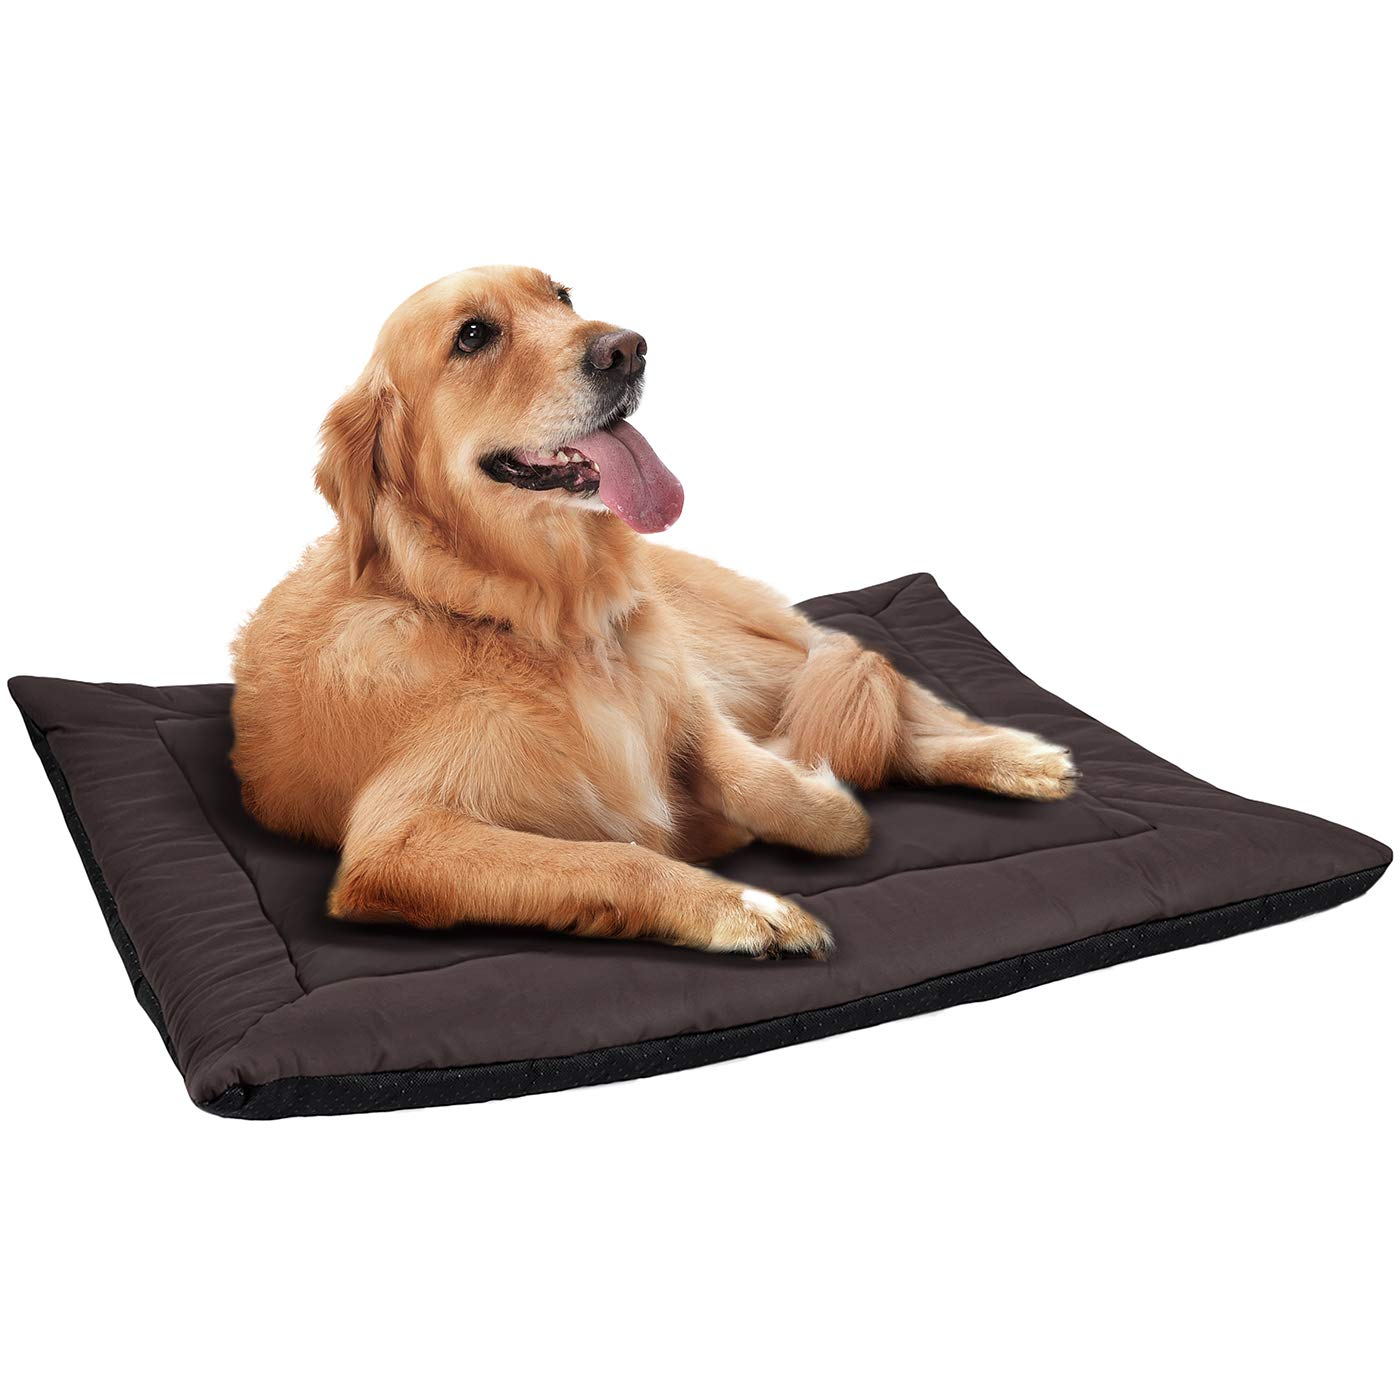 Paws & Pals Self-Warming Pet Pad